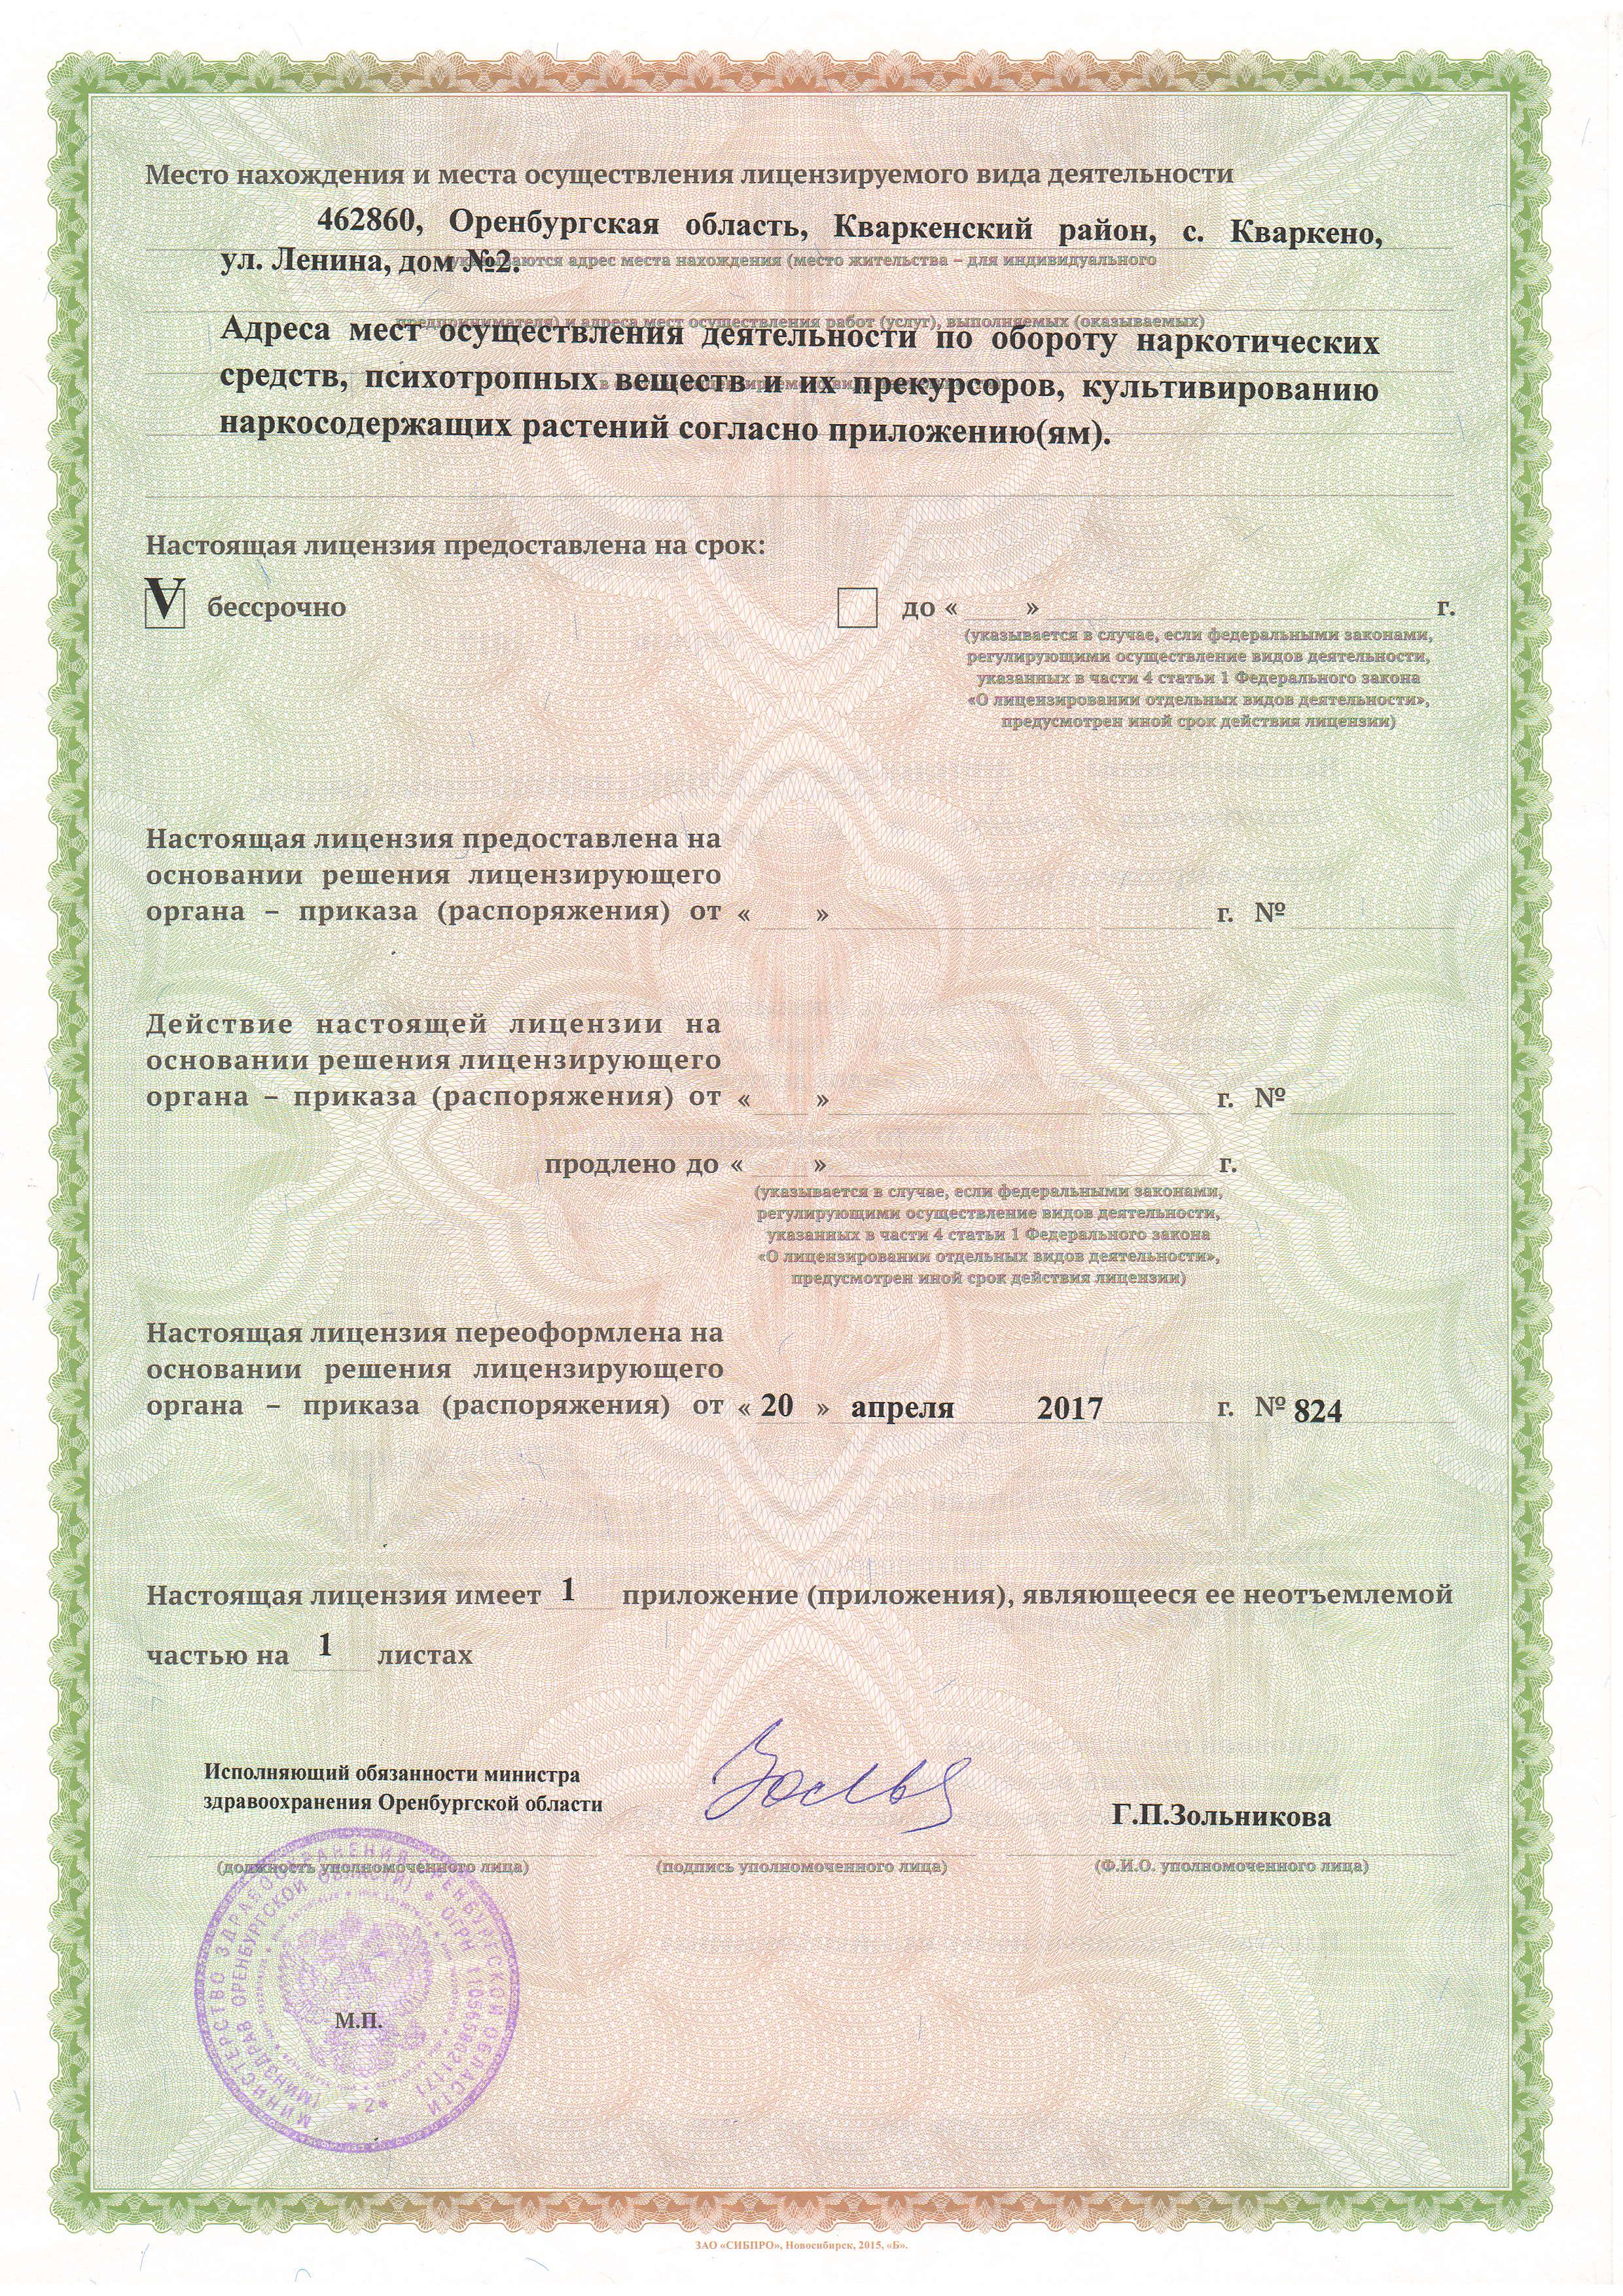 license medical attachm 2016 002